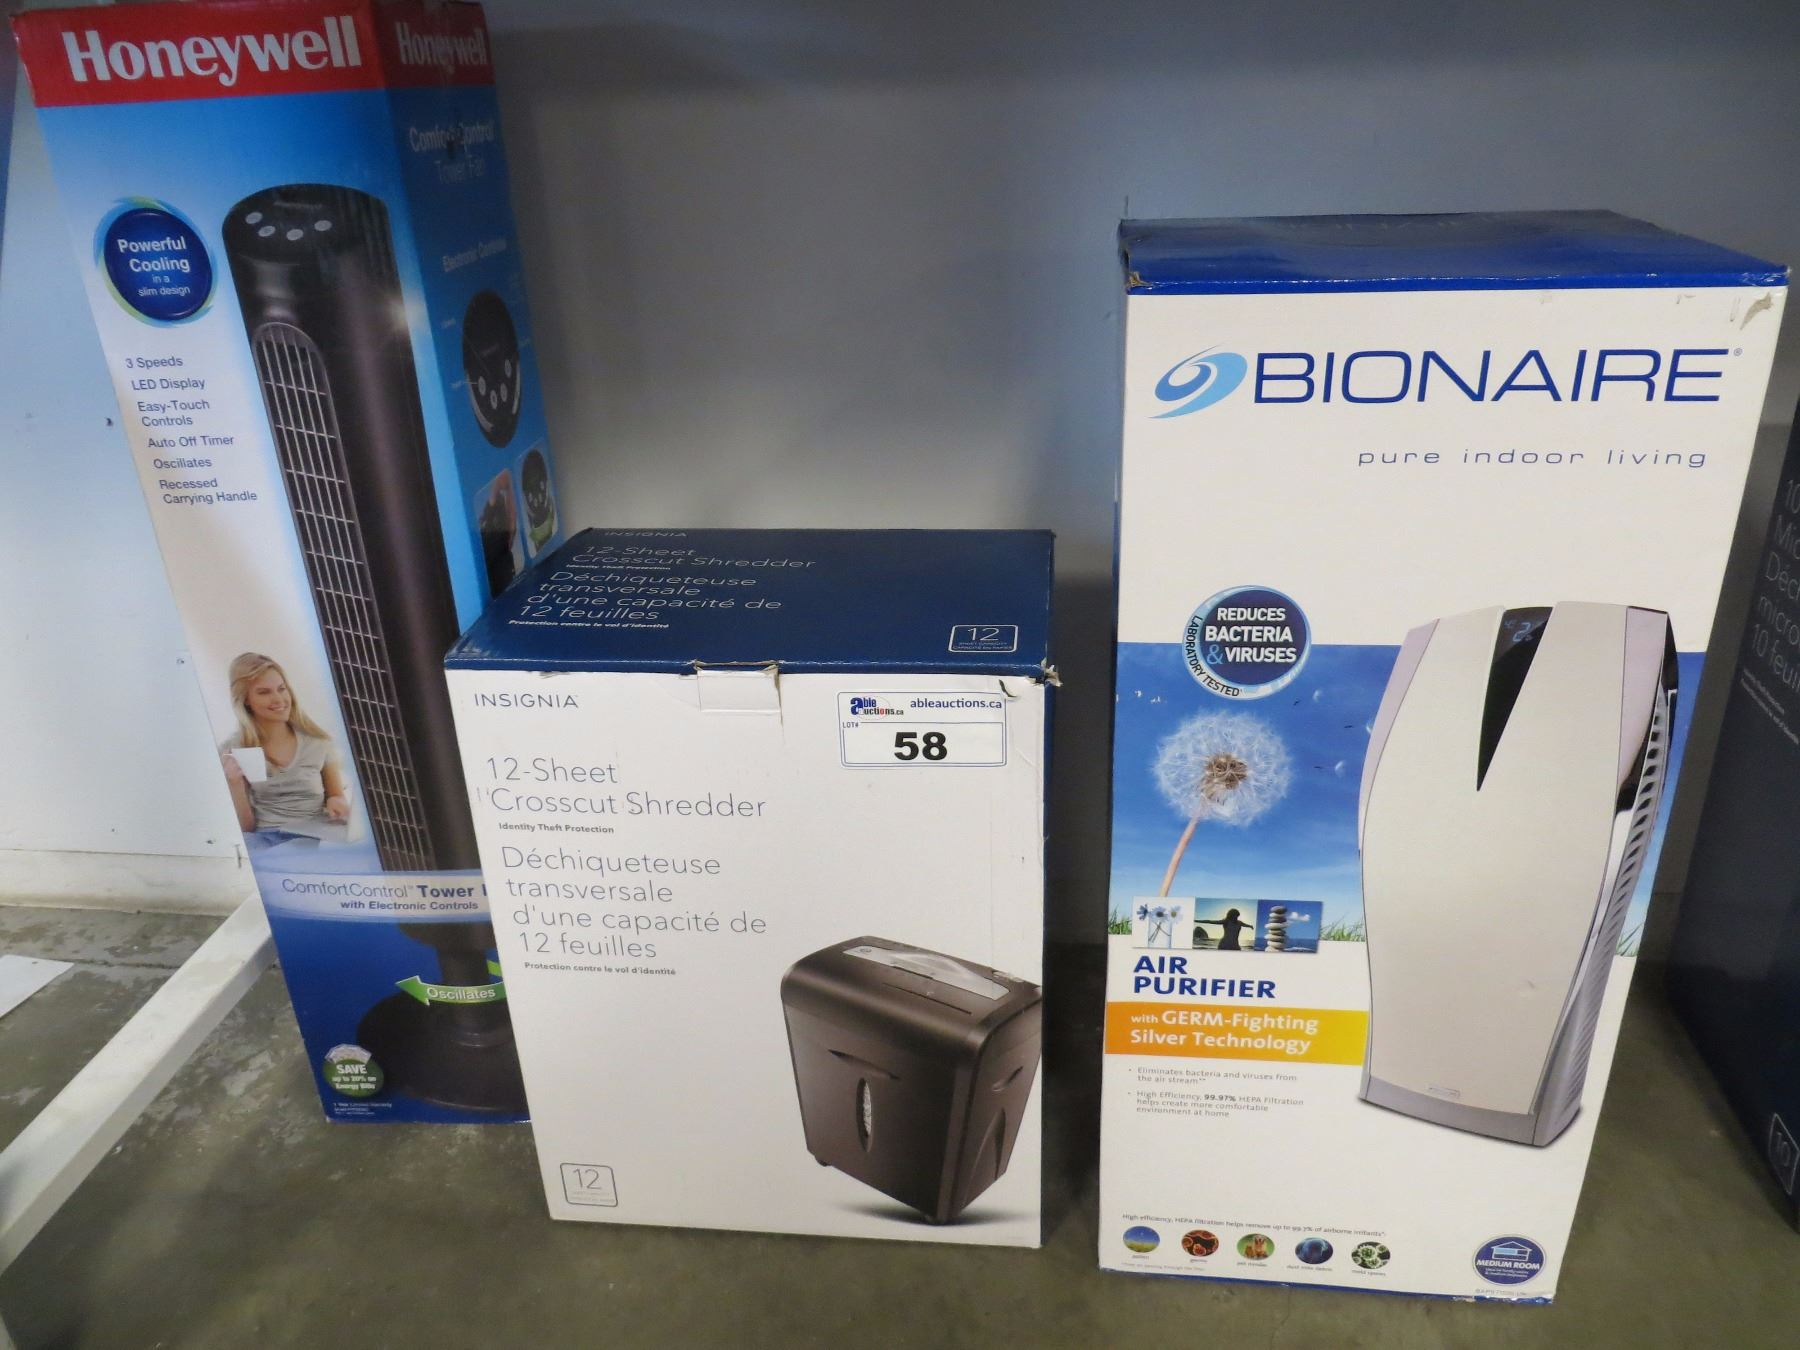 Image 1 BOXED HONEYWELL TOWER FAN BIONAIRE AIR PURIFIER 12 SHEET PAPER SHREDDER